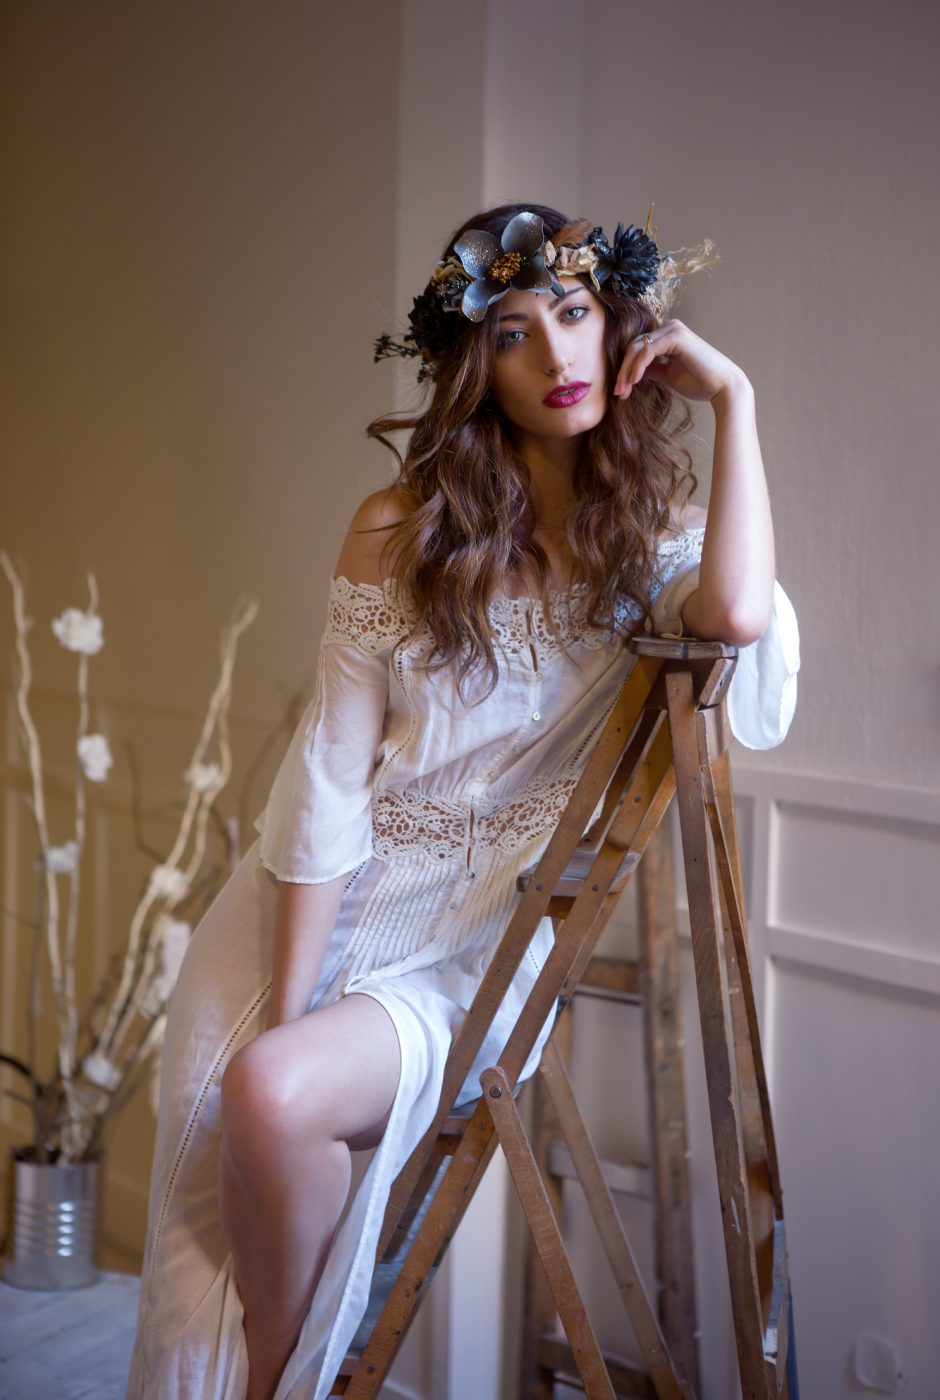 Editorial Ethereal Dream by Agata Pereira for Kooss Magazine